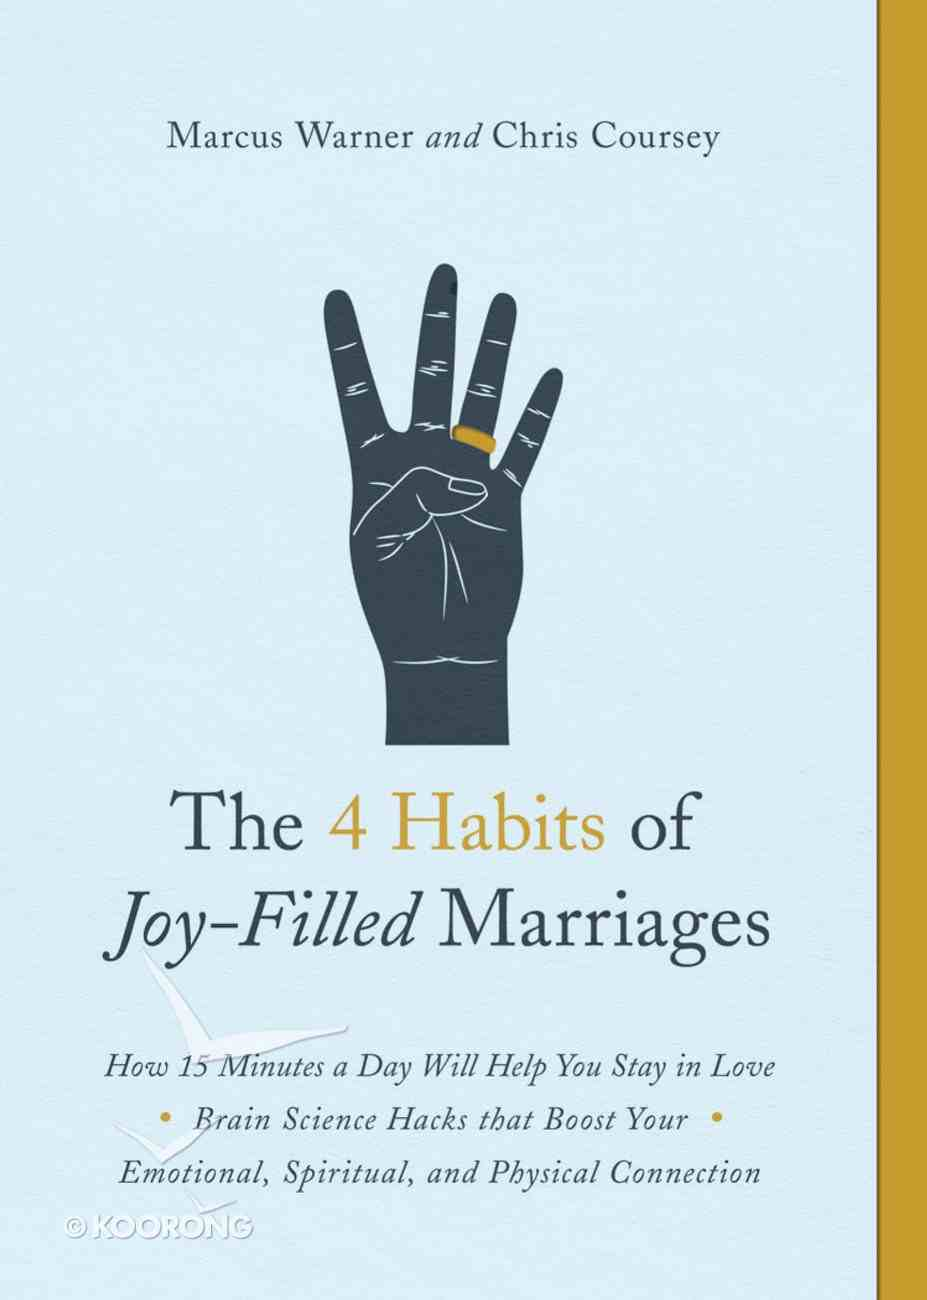 The 4 Habits of Joy-Filled Marriages eBook